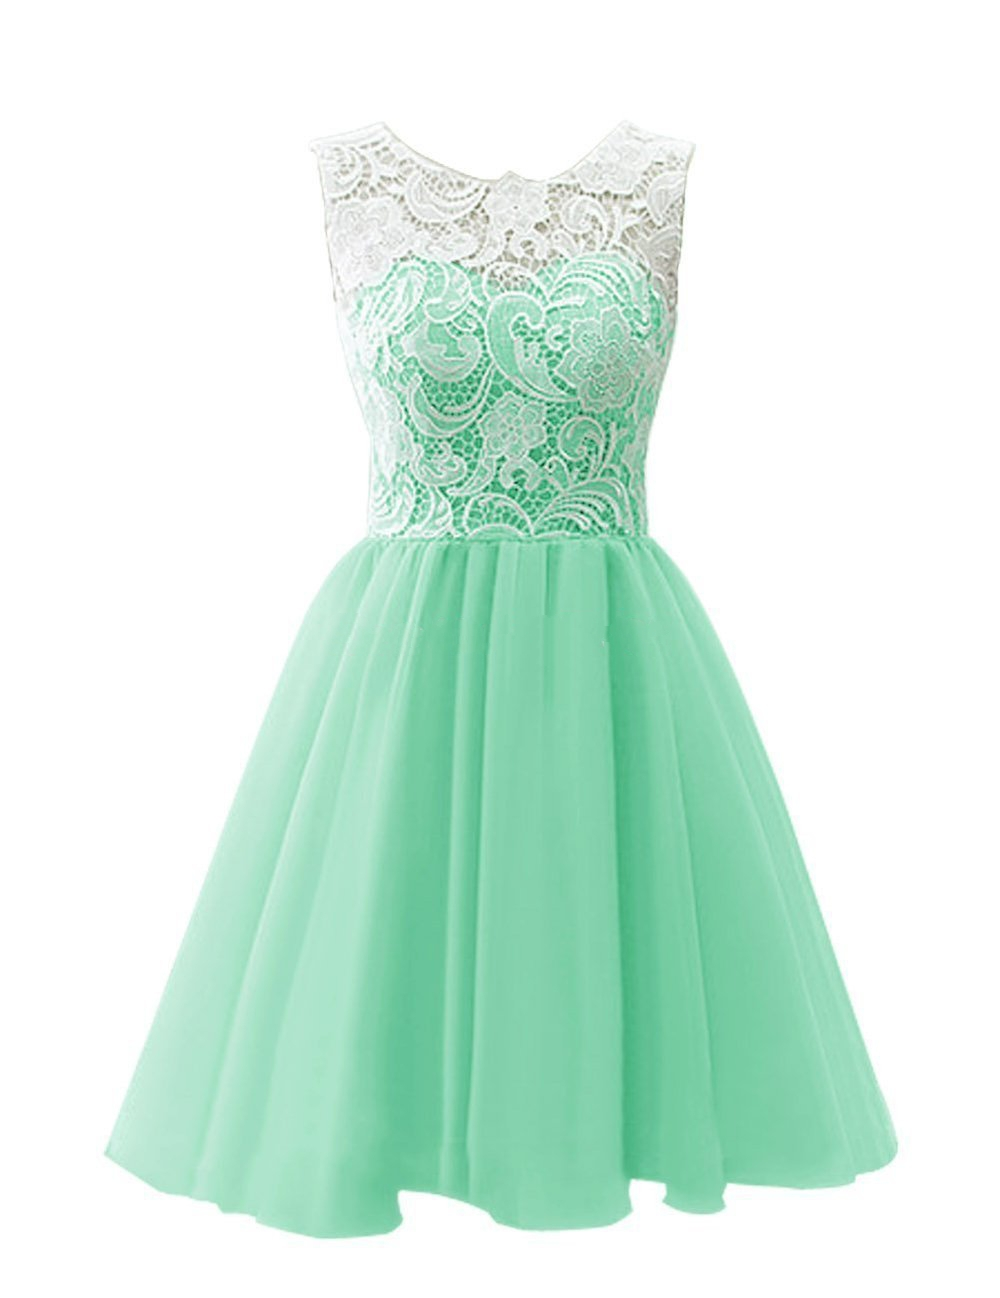 Buy 2015 cute turquoise flower girl dresses lace girl gowns real buy 2015 cute turquoise flower girl dresses lace girl gowns real picture flower girl dresses first communion dresses for girls in cheap price on mibaba izmirmasajfo